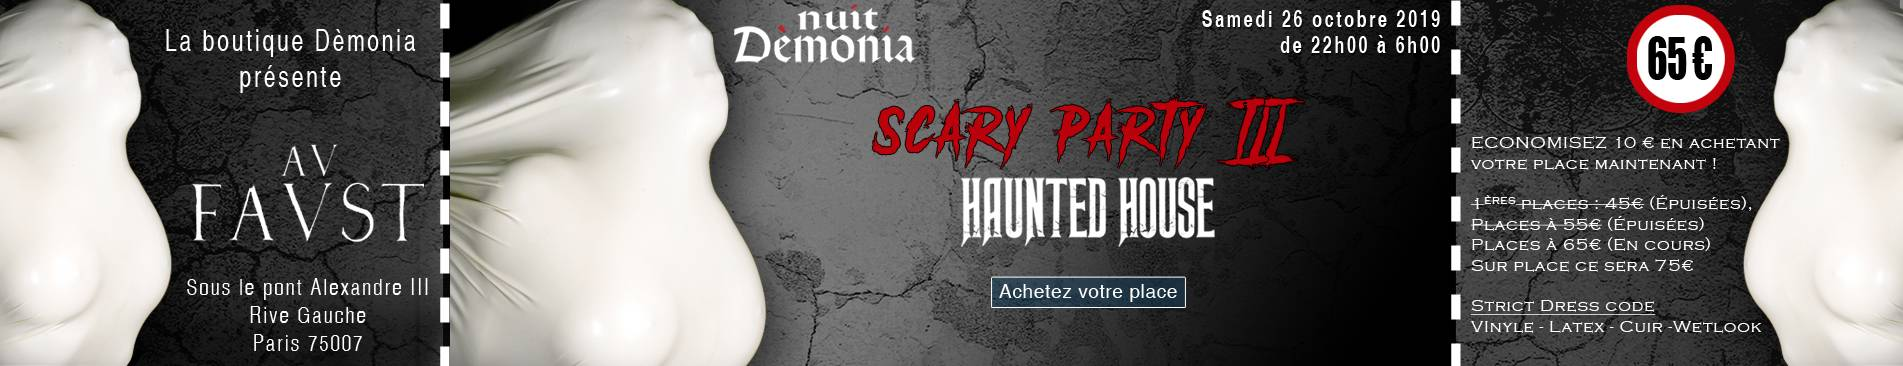 Nuit Dèmonia Scary Party III - 26 octobre 2019